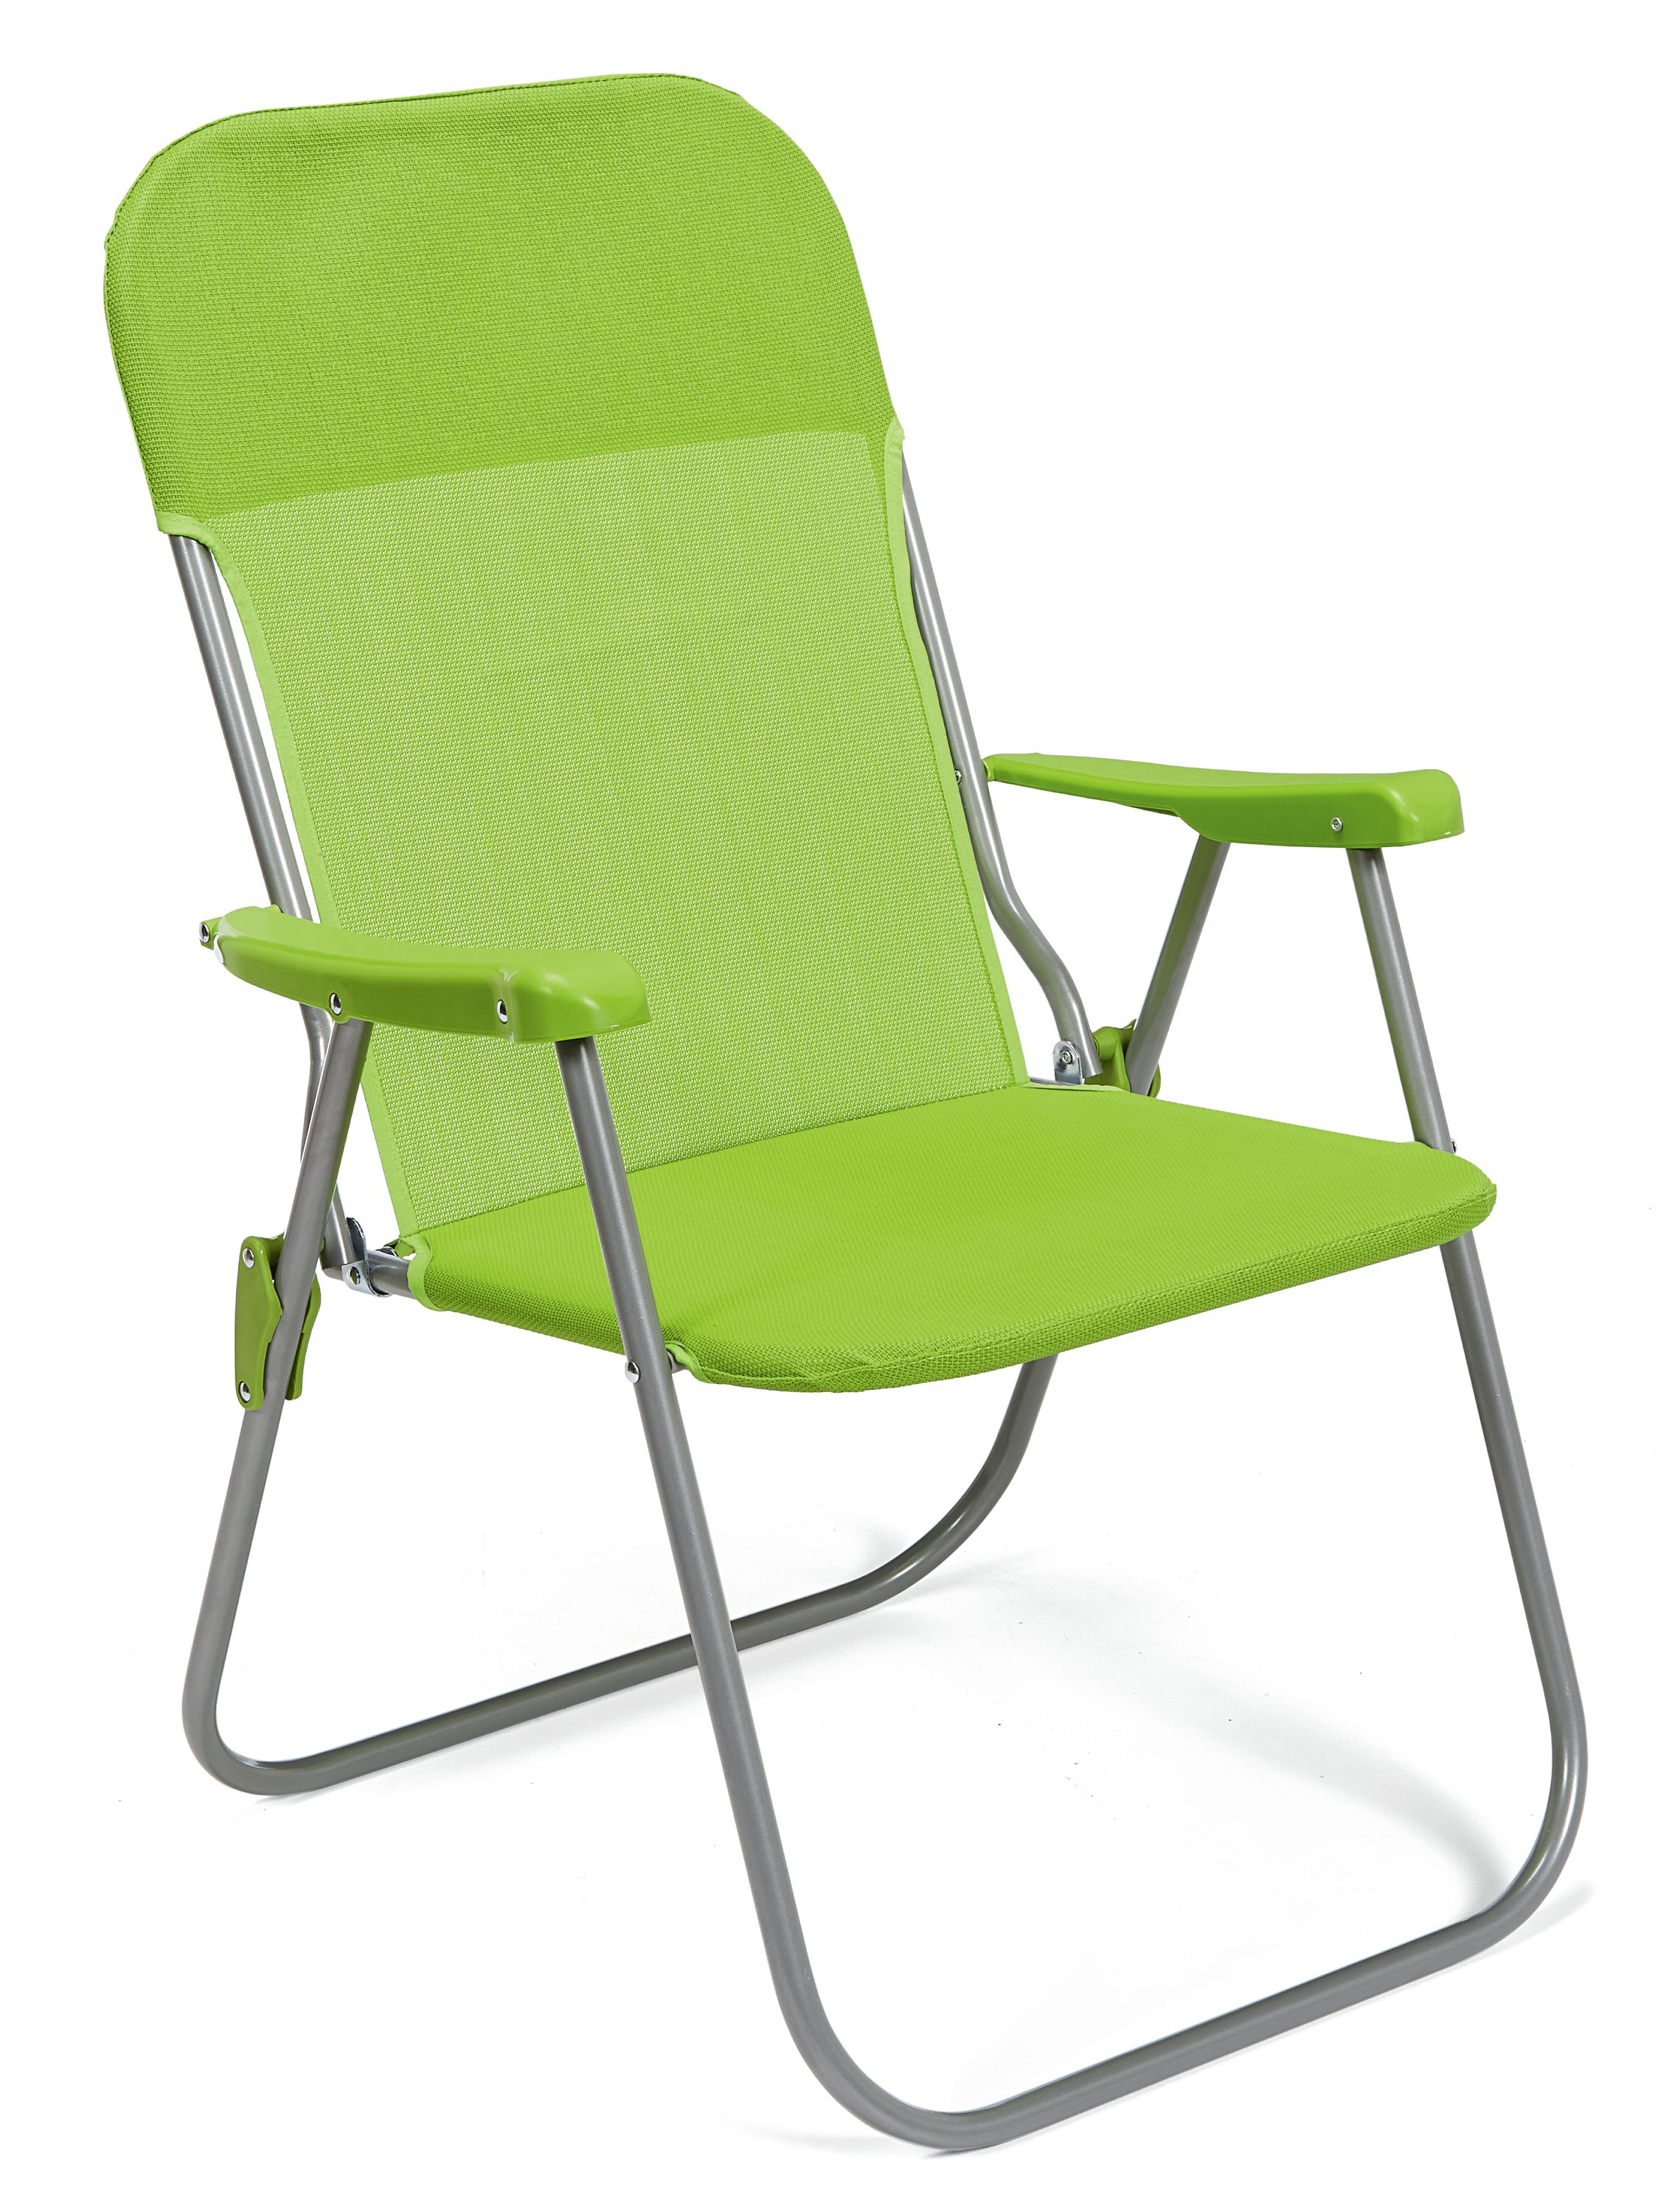 folding chair green adirondack chairs lowes bbq pro limited availability